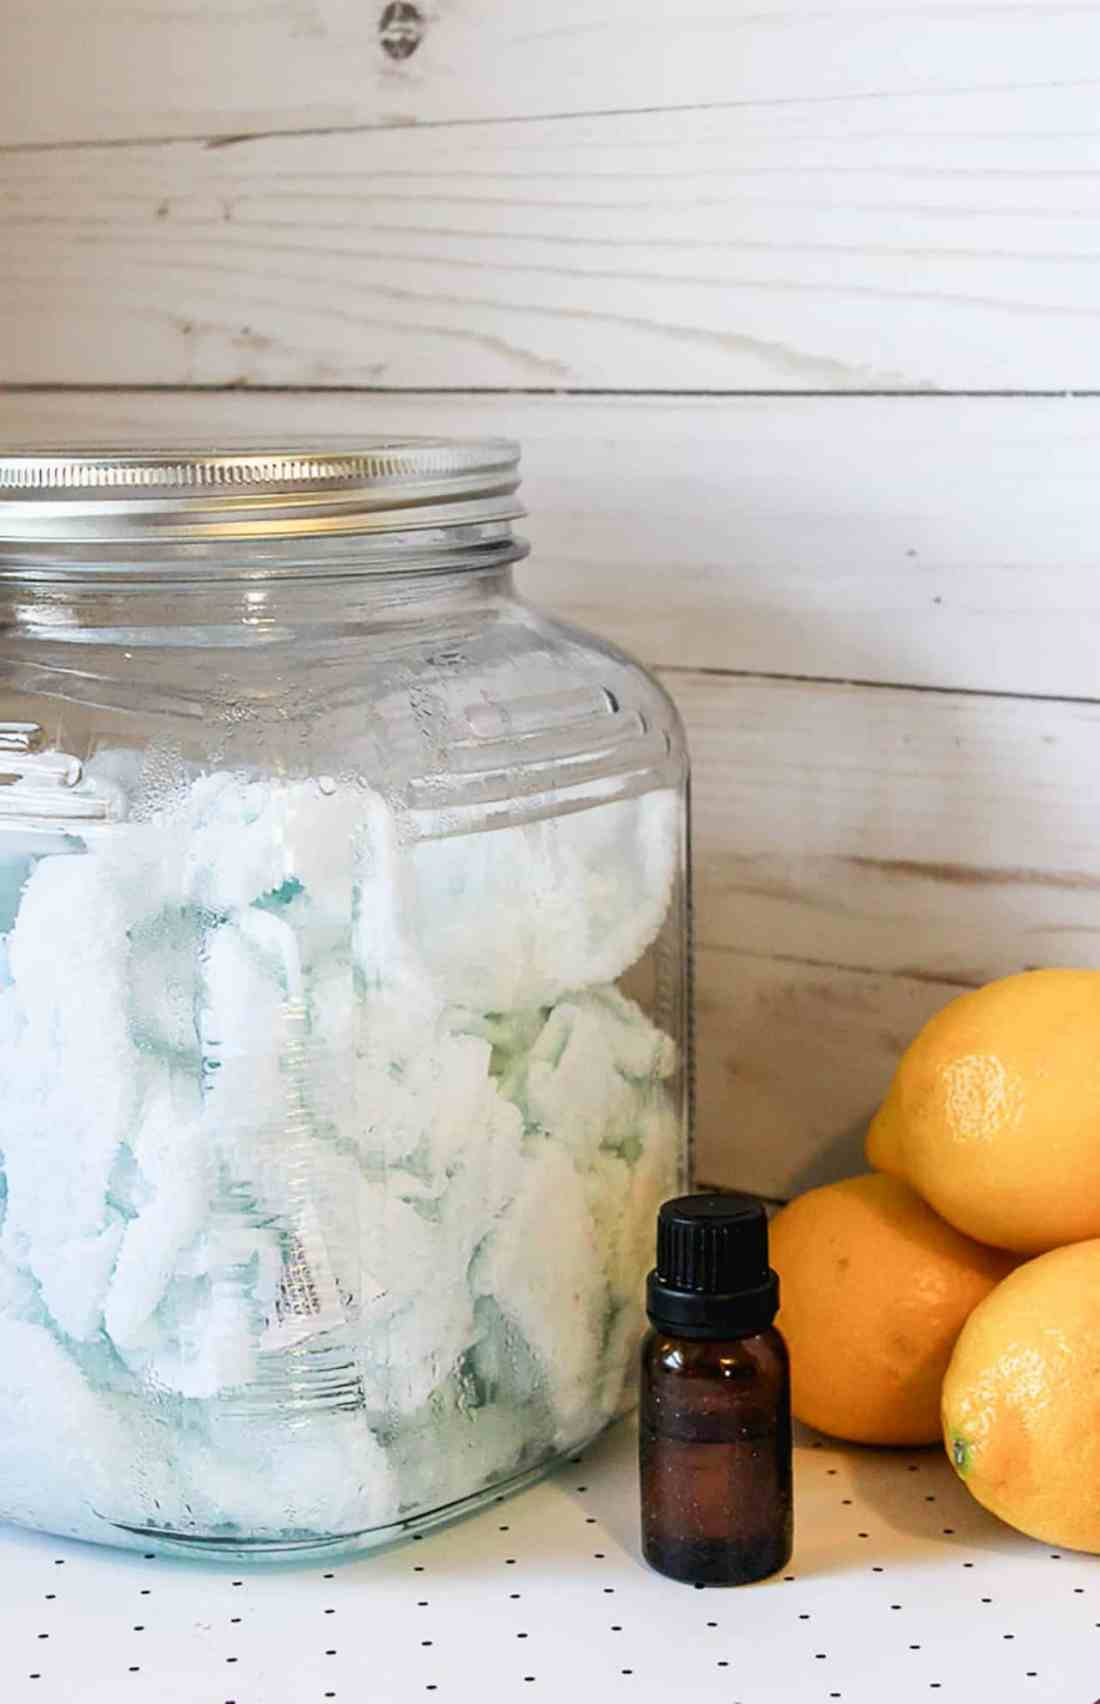 If you want to learn how to make disinfectant wipes, then you will love this recipe for REUSABLE DIY Clorox Wipes! They even smell lemony-fresh!